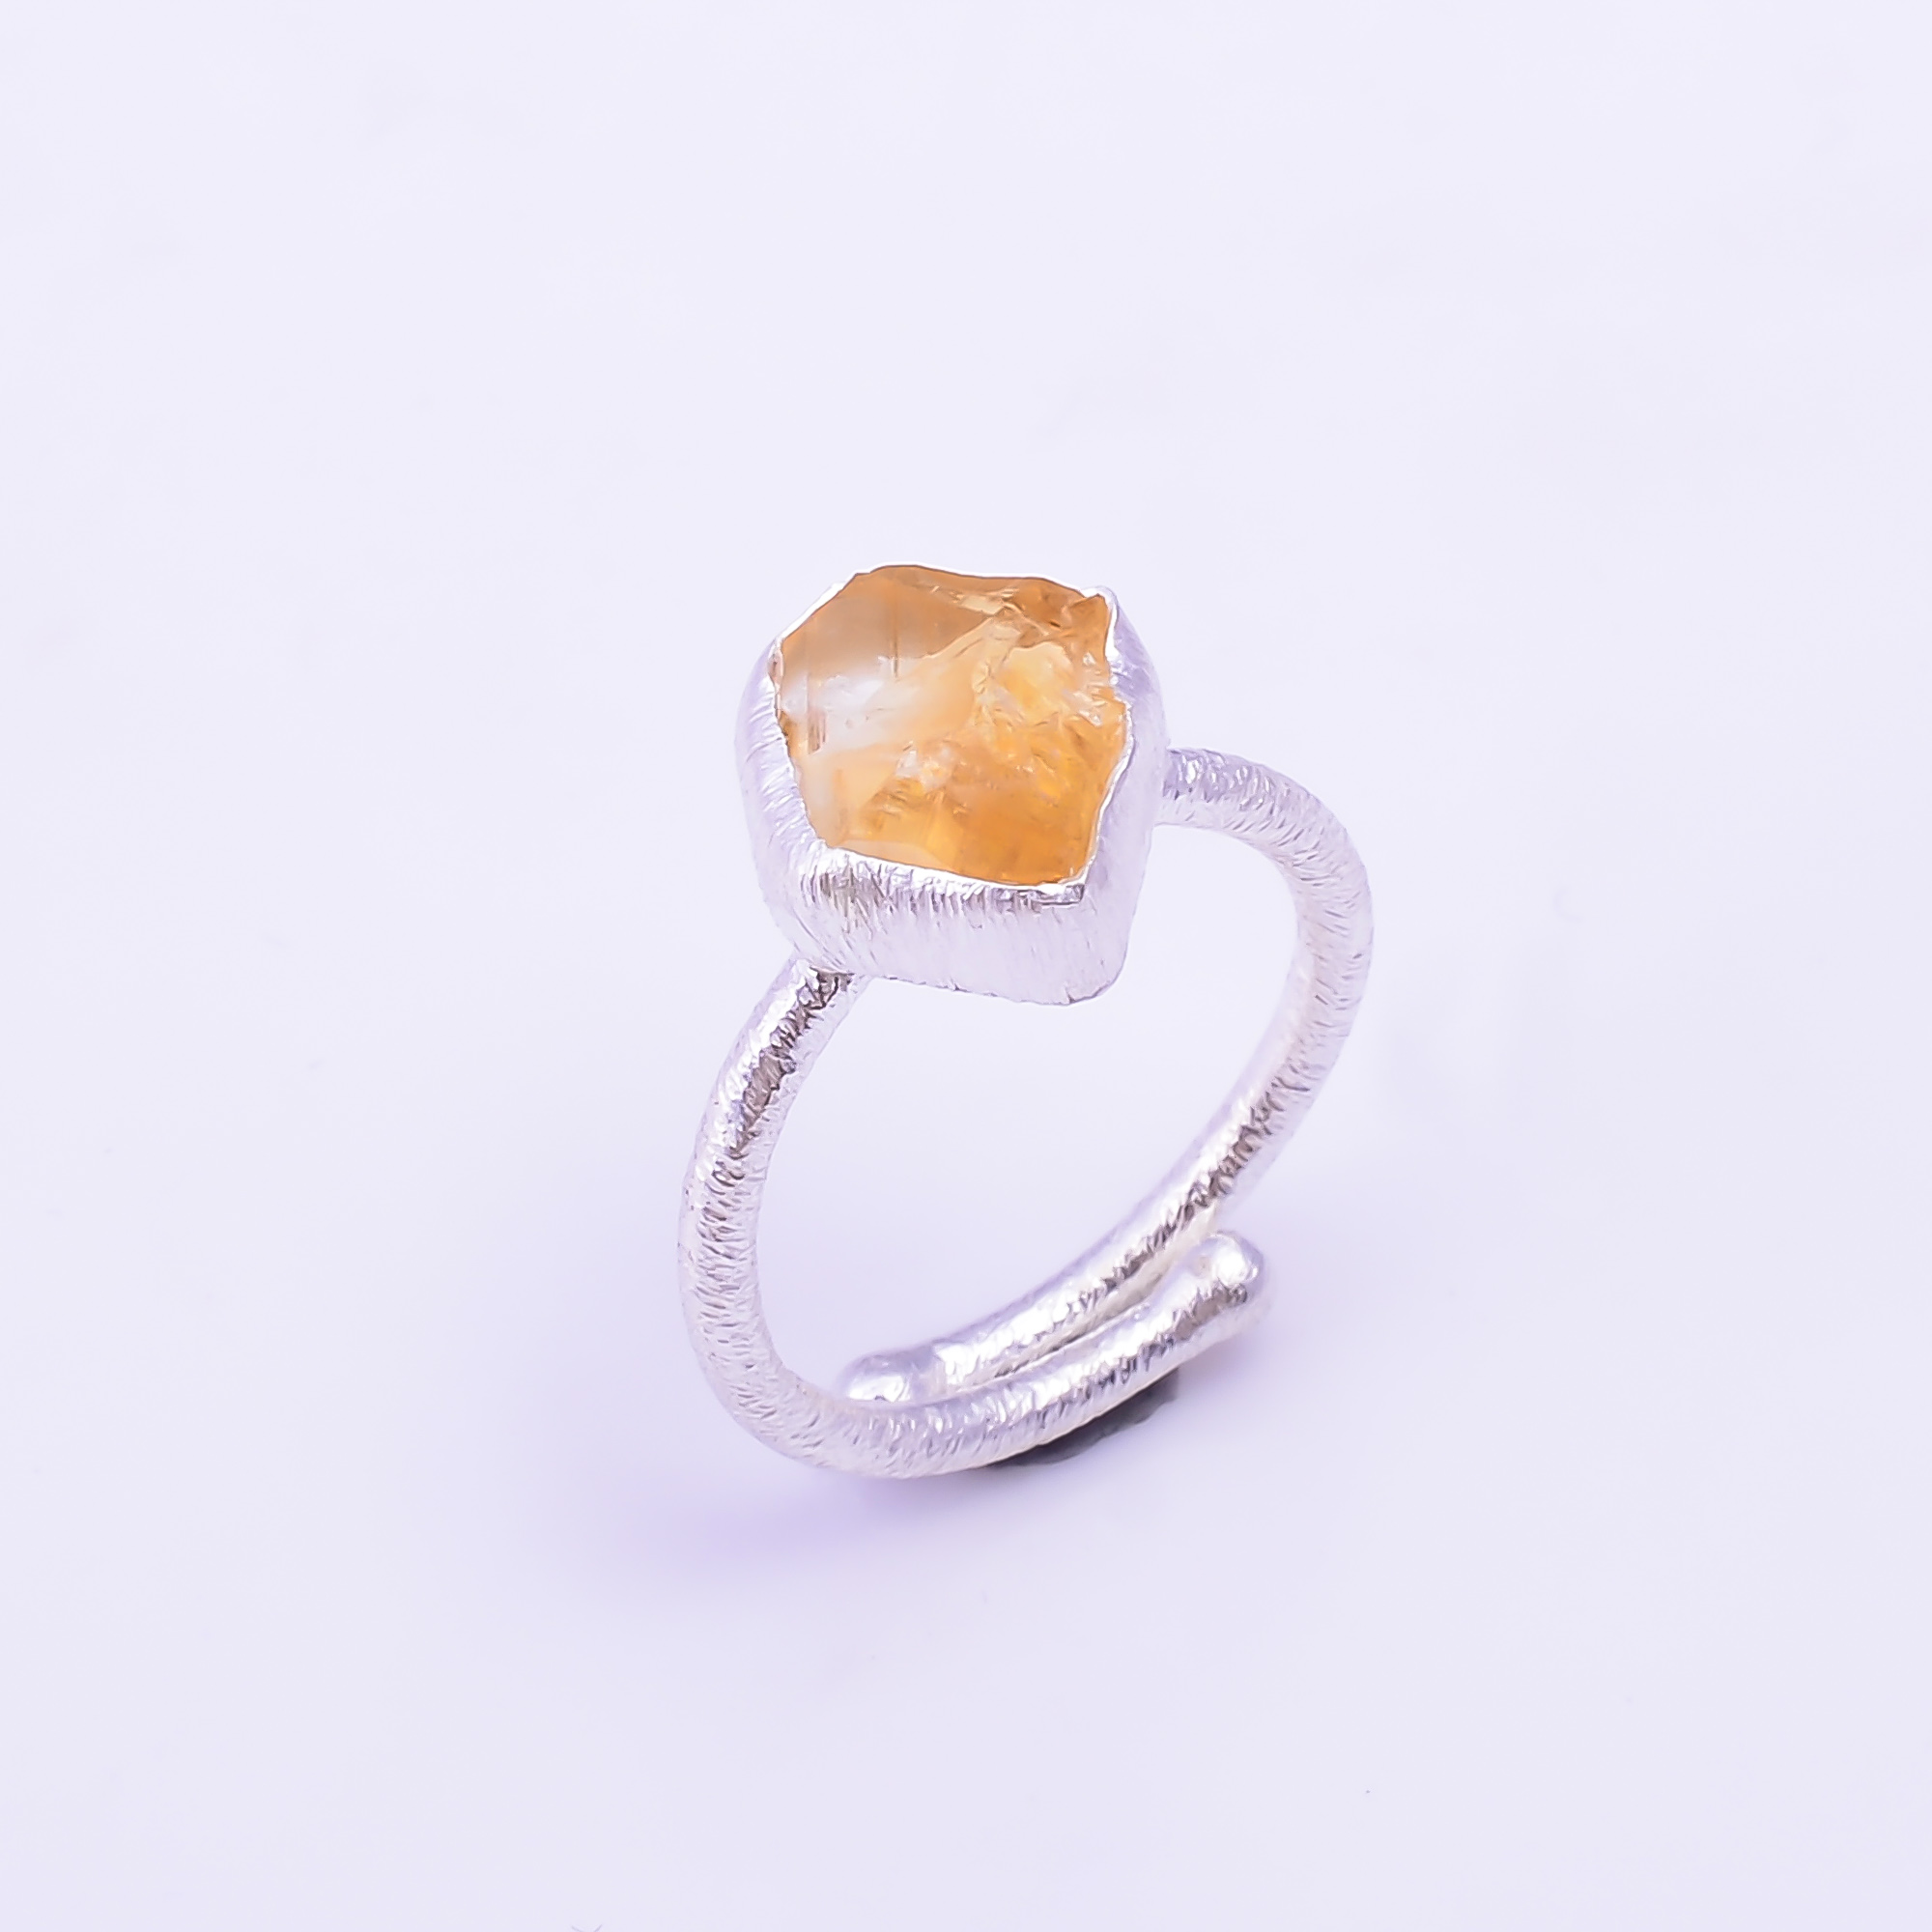 Raw Citrine Gemstone 925 Sterling Silver Ring Size US 6.5 Adjustable